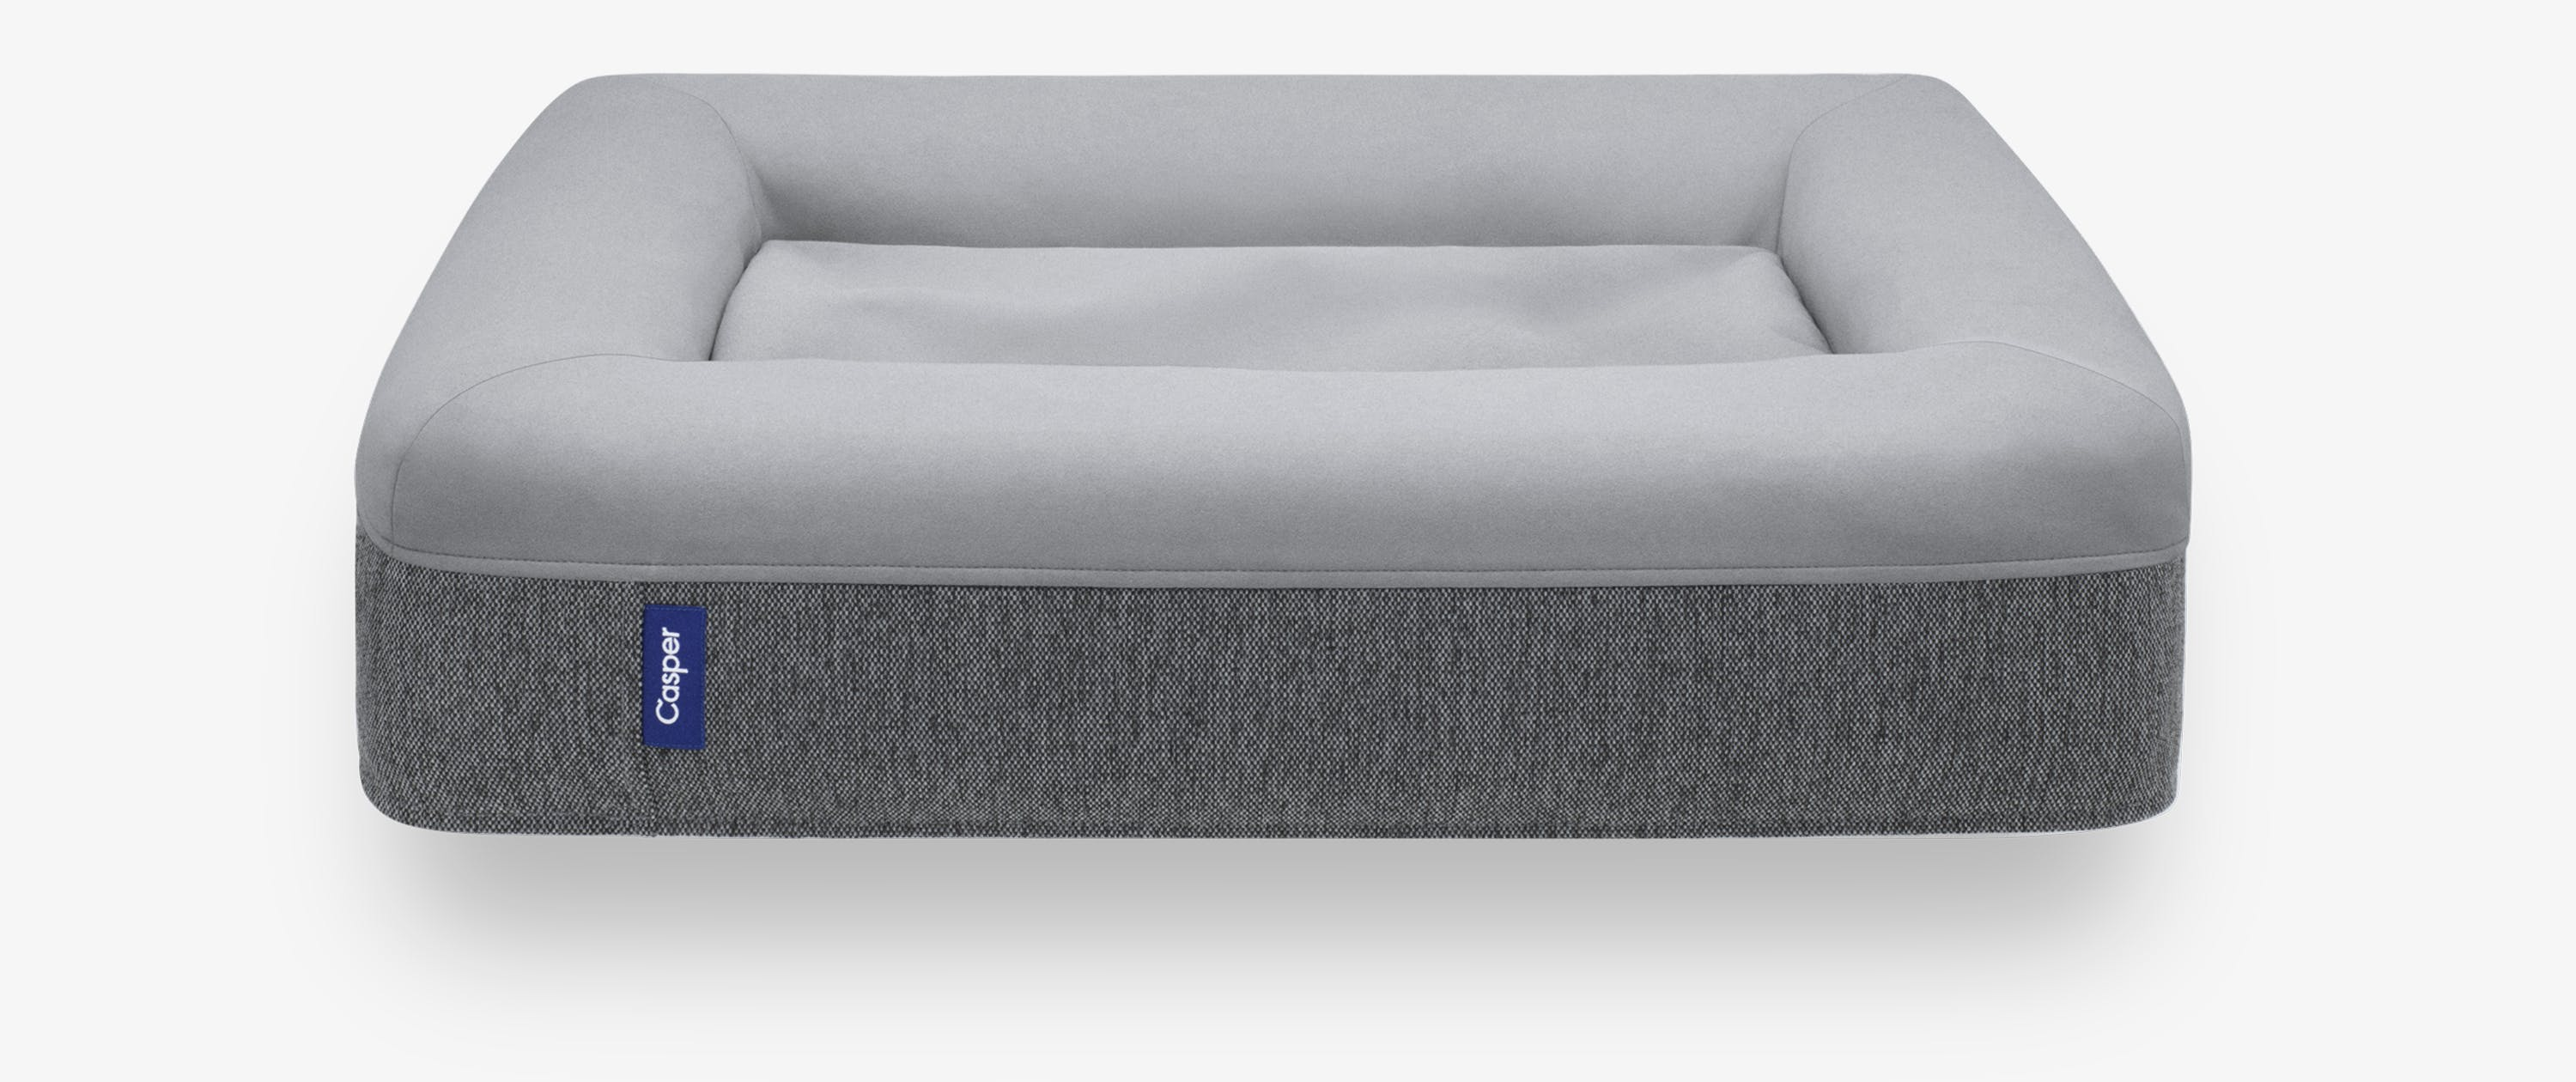 The gray Casper Dog Bed